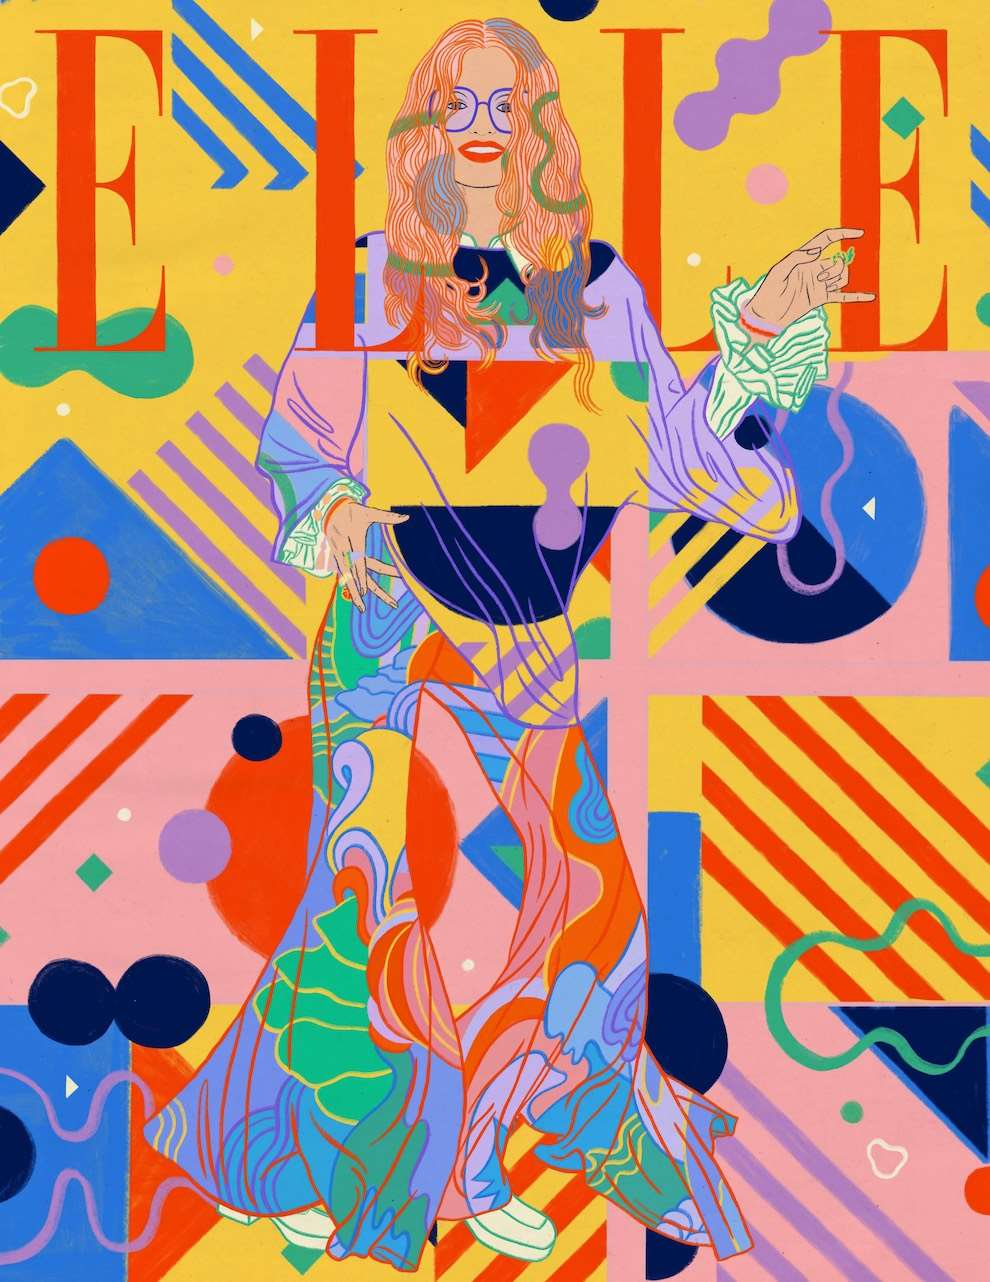 Anna Higgie, Graphic and colourful portrait of a woman, cover of ELLE magazine